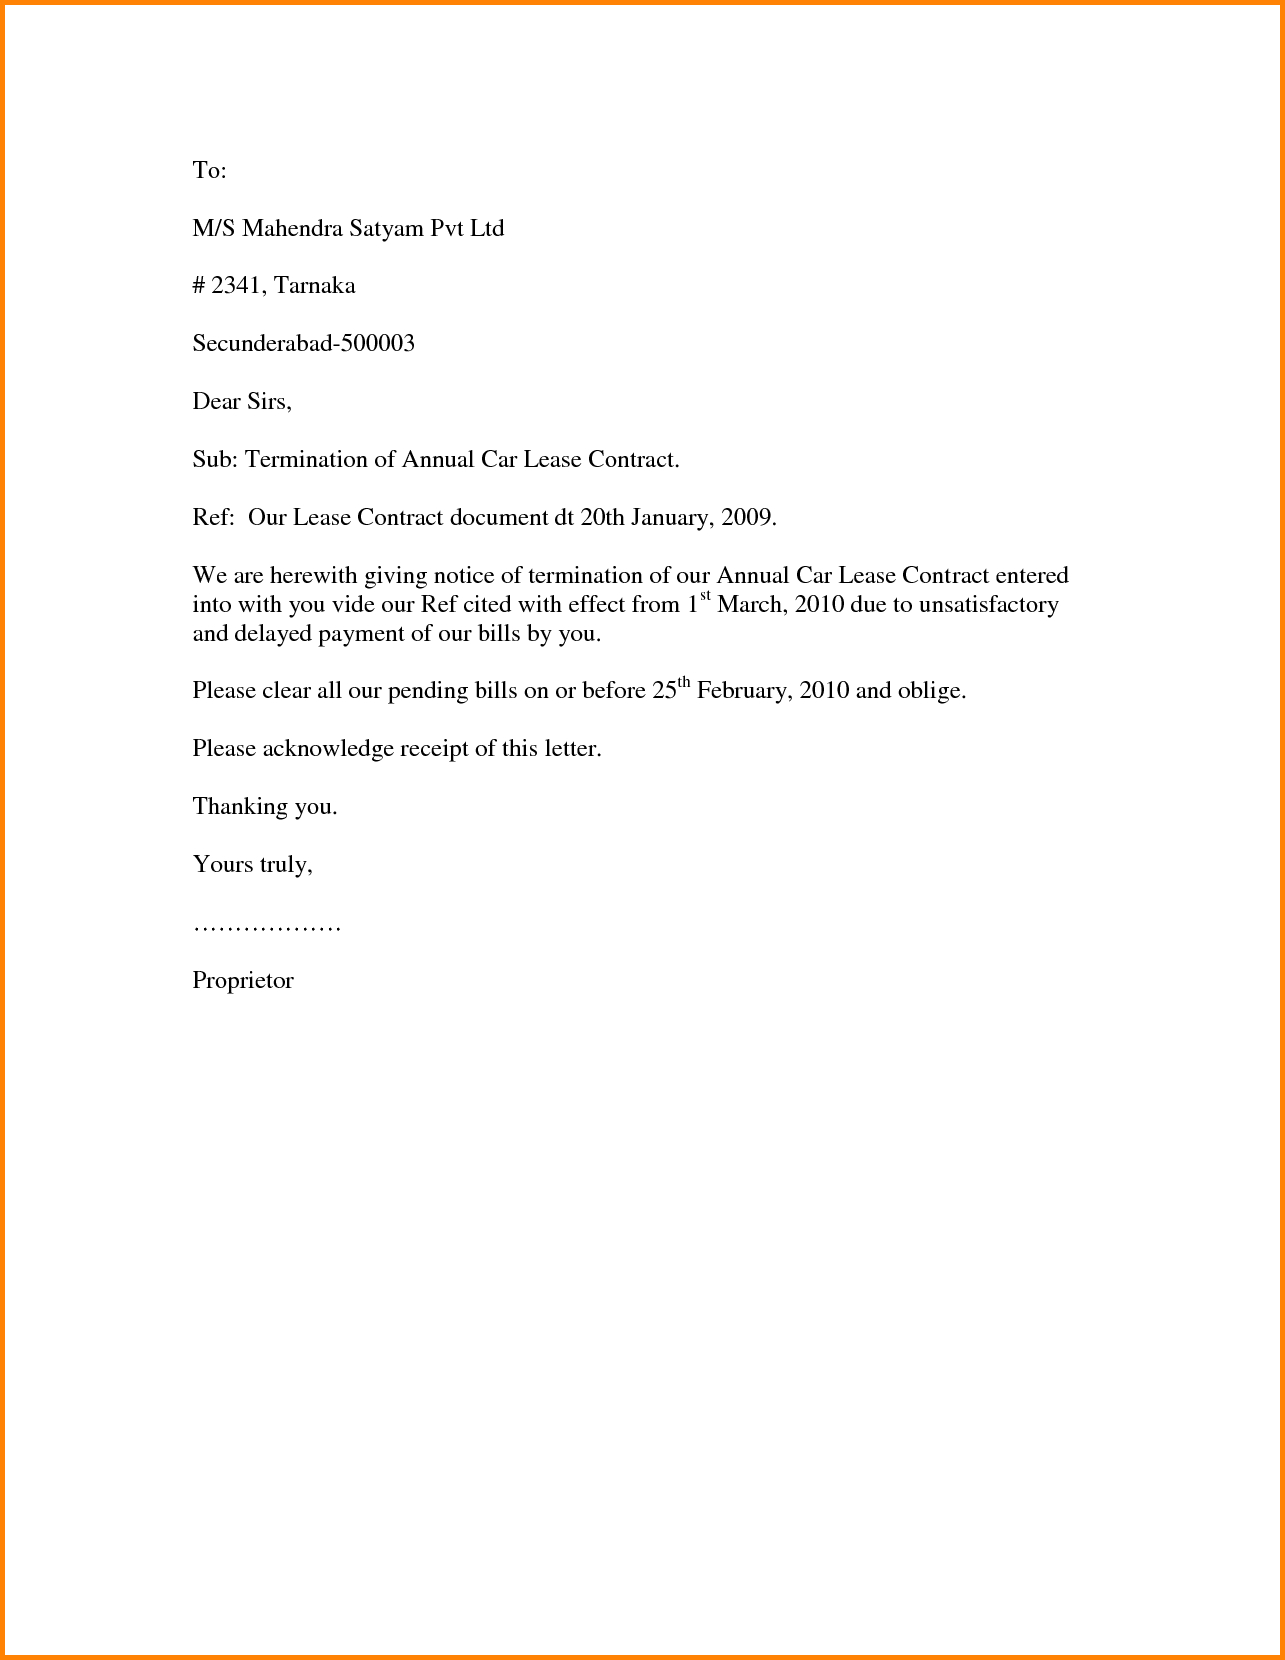 Rent Agreement Letter Template - How to End Letters How to End A Resignation Letter Fancy Resume How